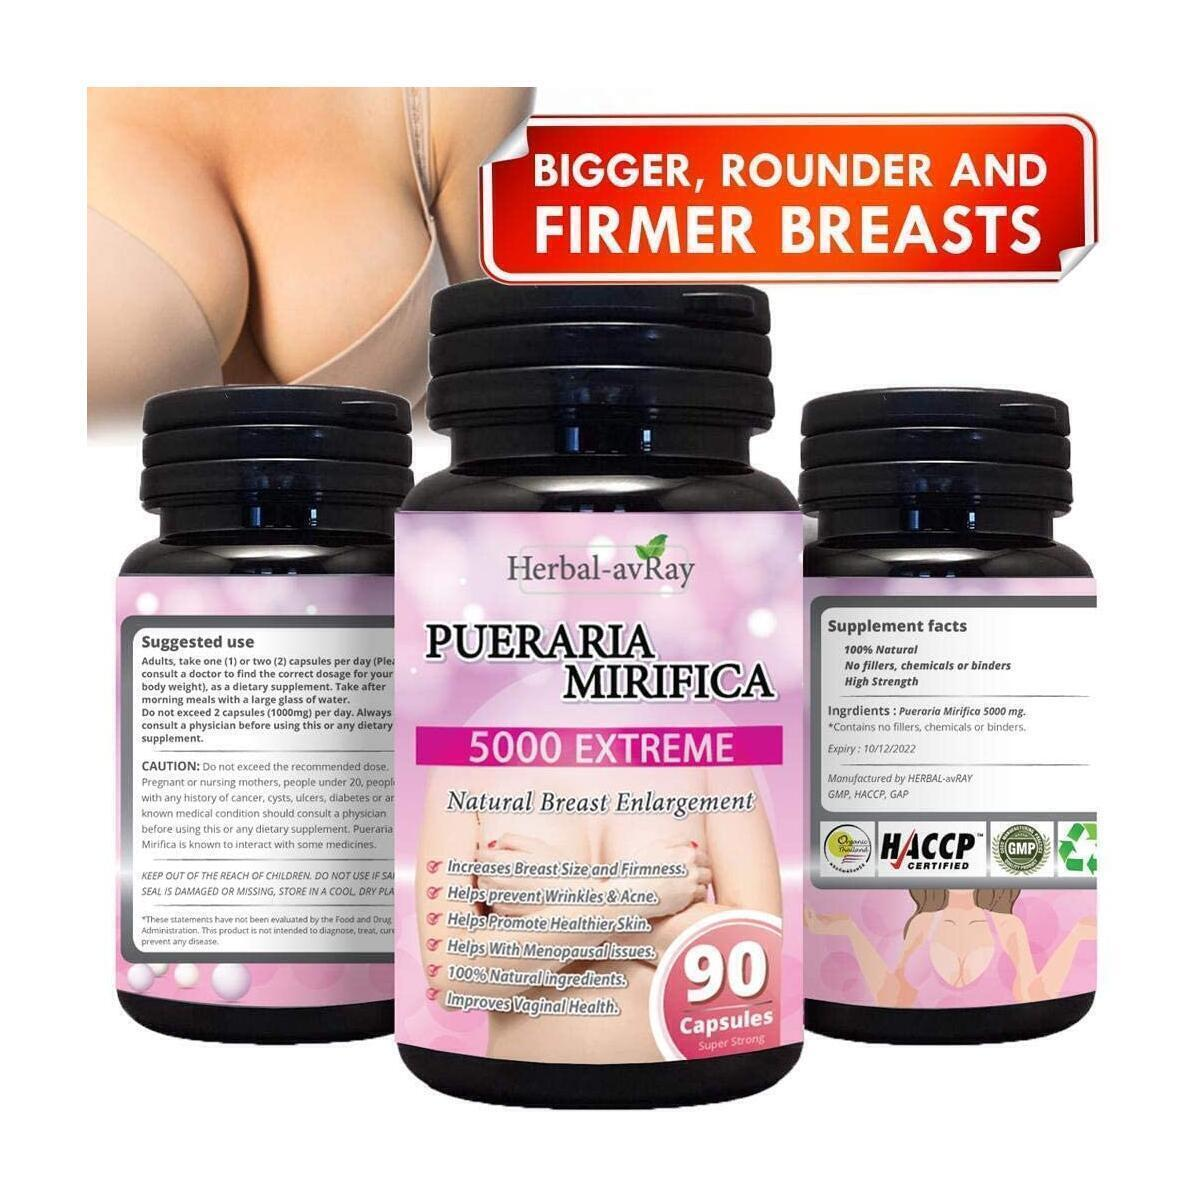 Pueraria Mirifica Capsules 5000mg | Natural Breast Enhancement Pills for Women | Breast Enlargement Pills | Breast Enlarger, Vaginal Health, Menopause Relief, Skin & Hair Health 90 Vegetarian Capsules